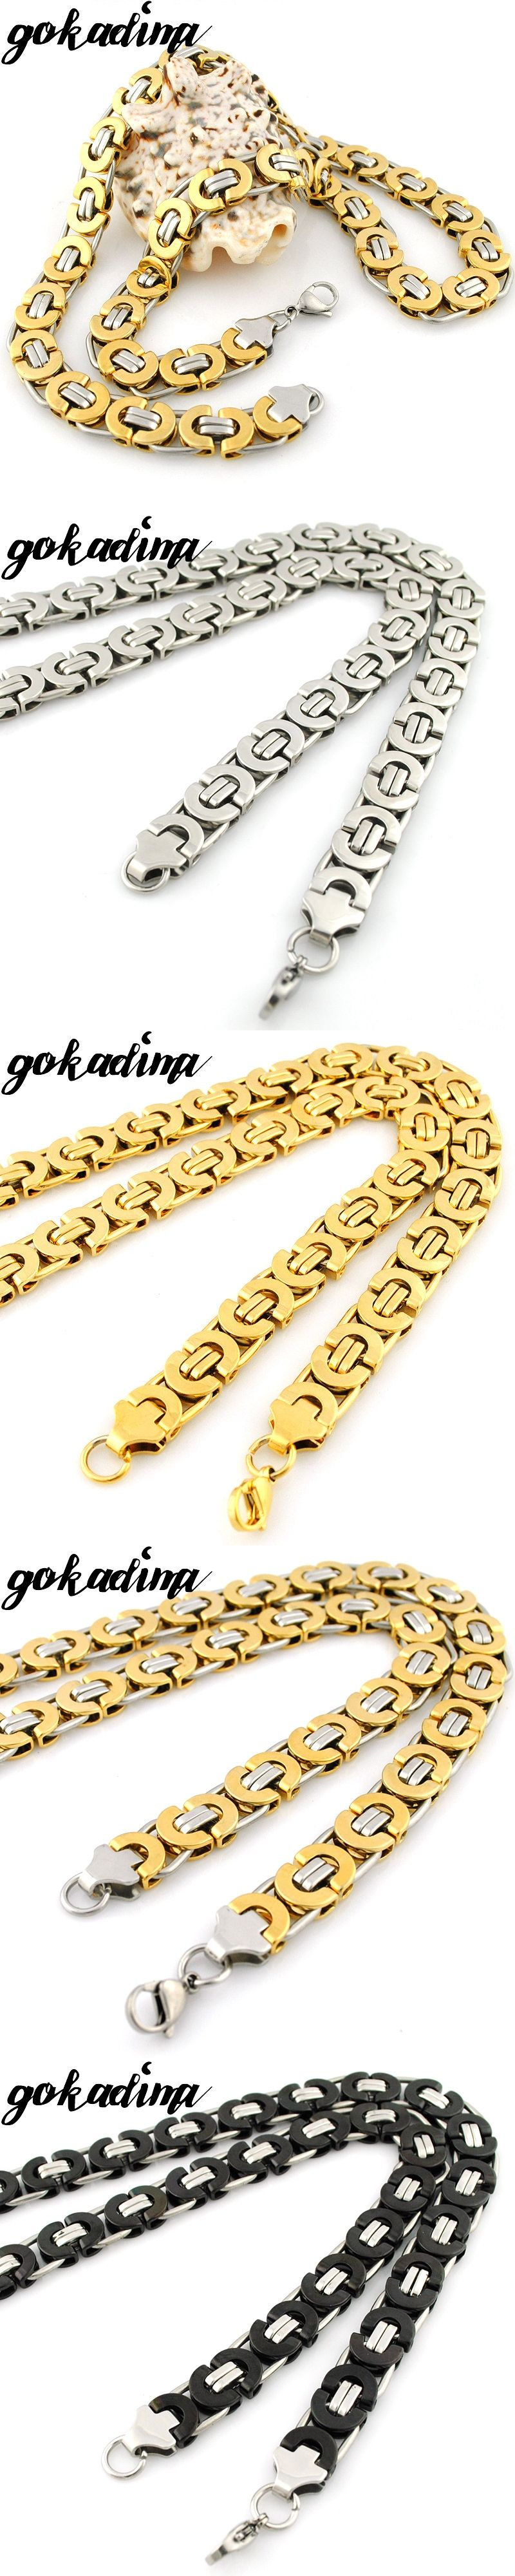 product chain with s gold on stainless wholesale chains online steel store jewelry byzantine mens necklace men piece plated fashion